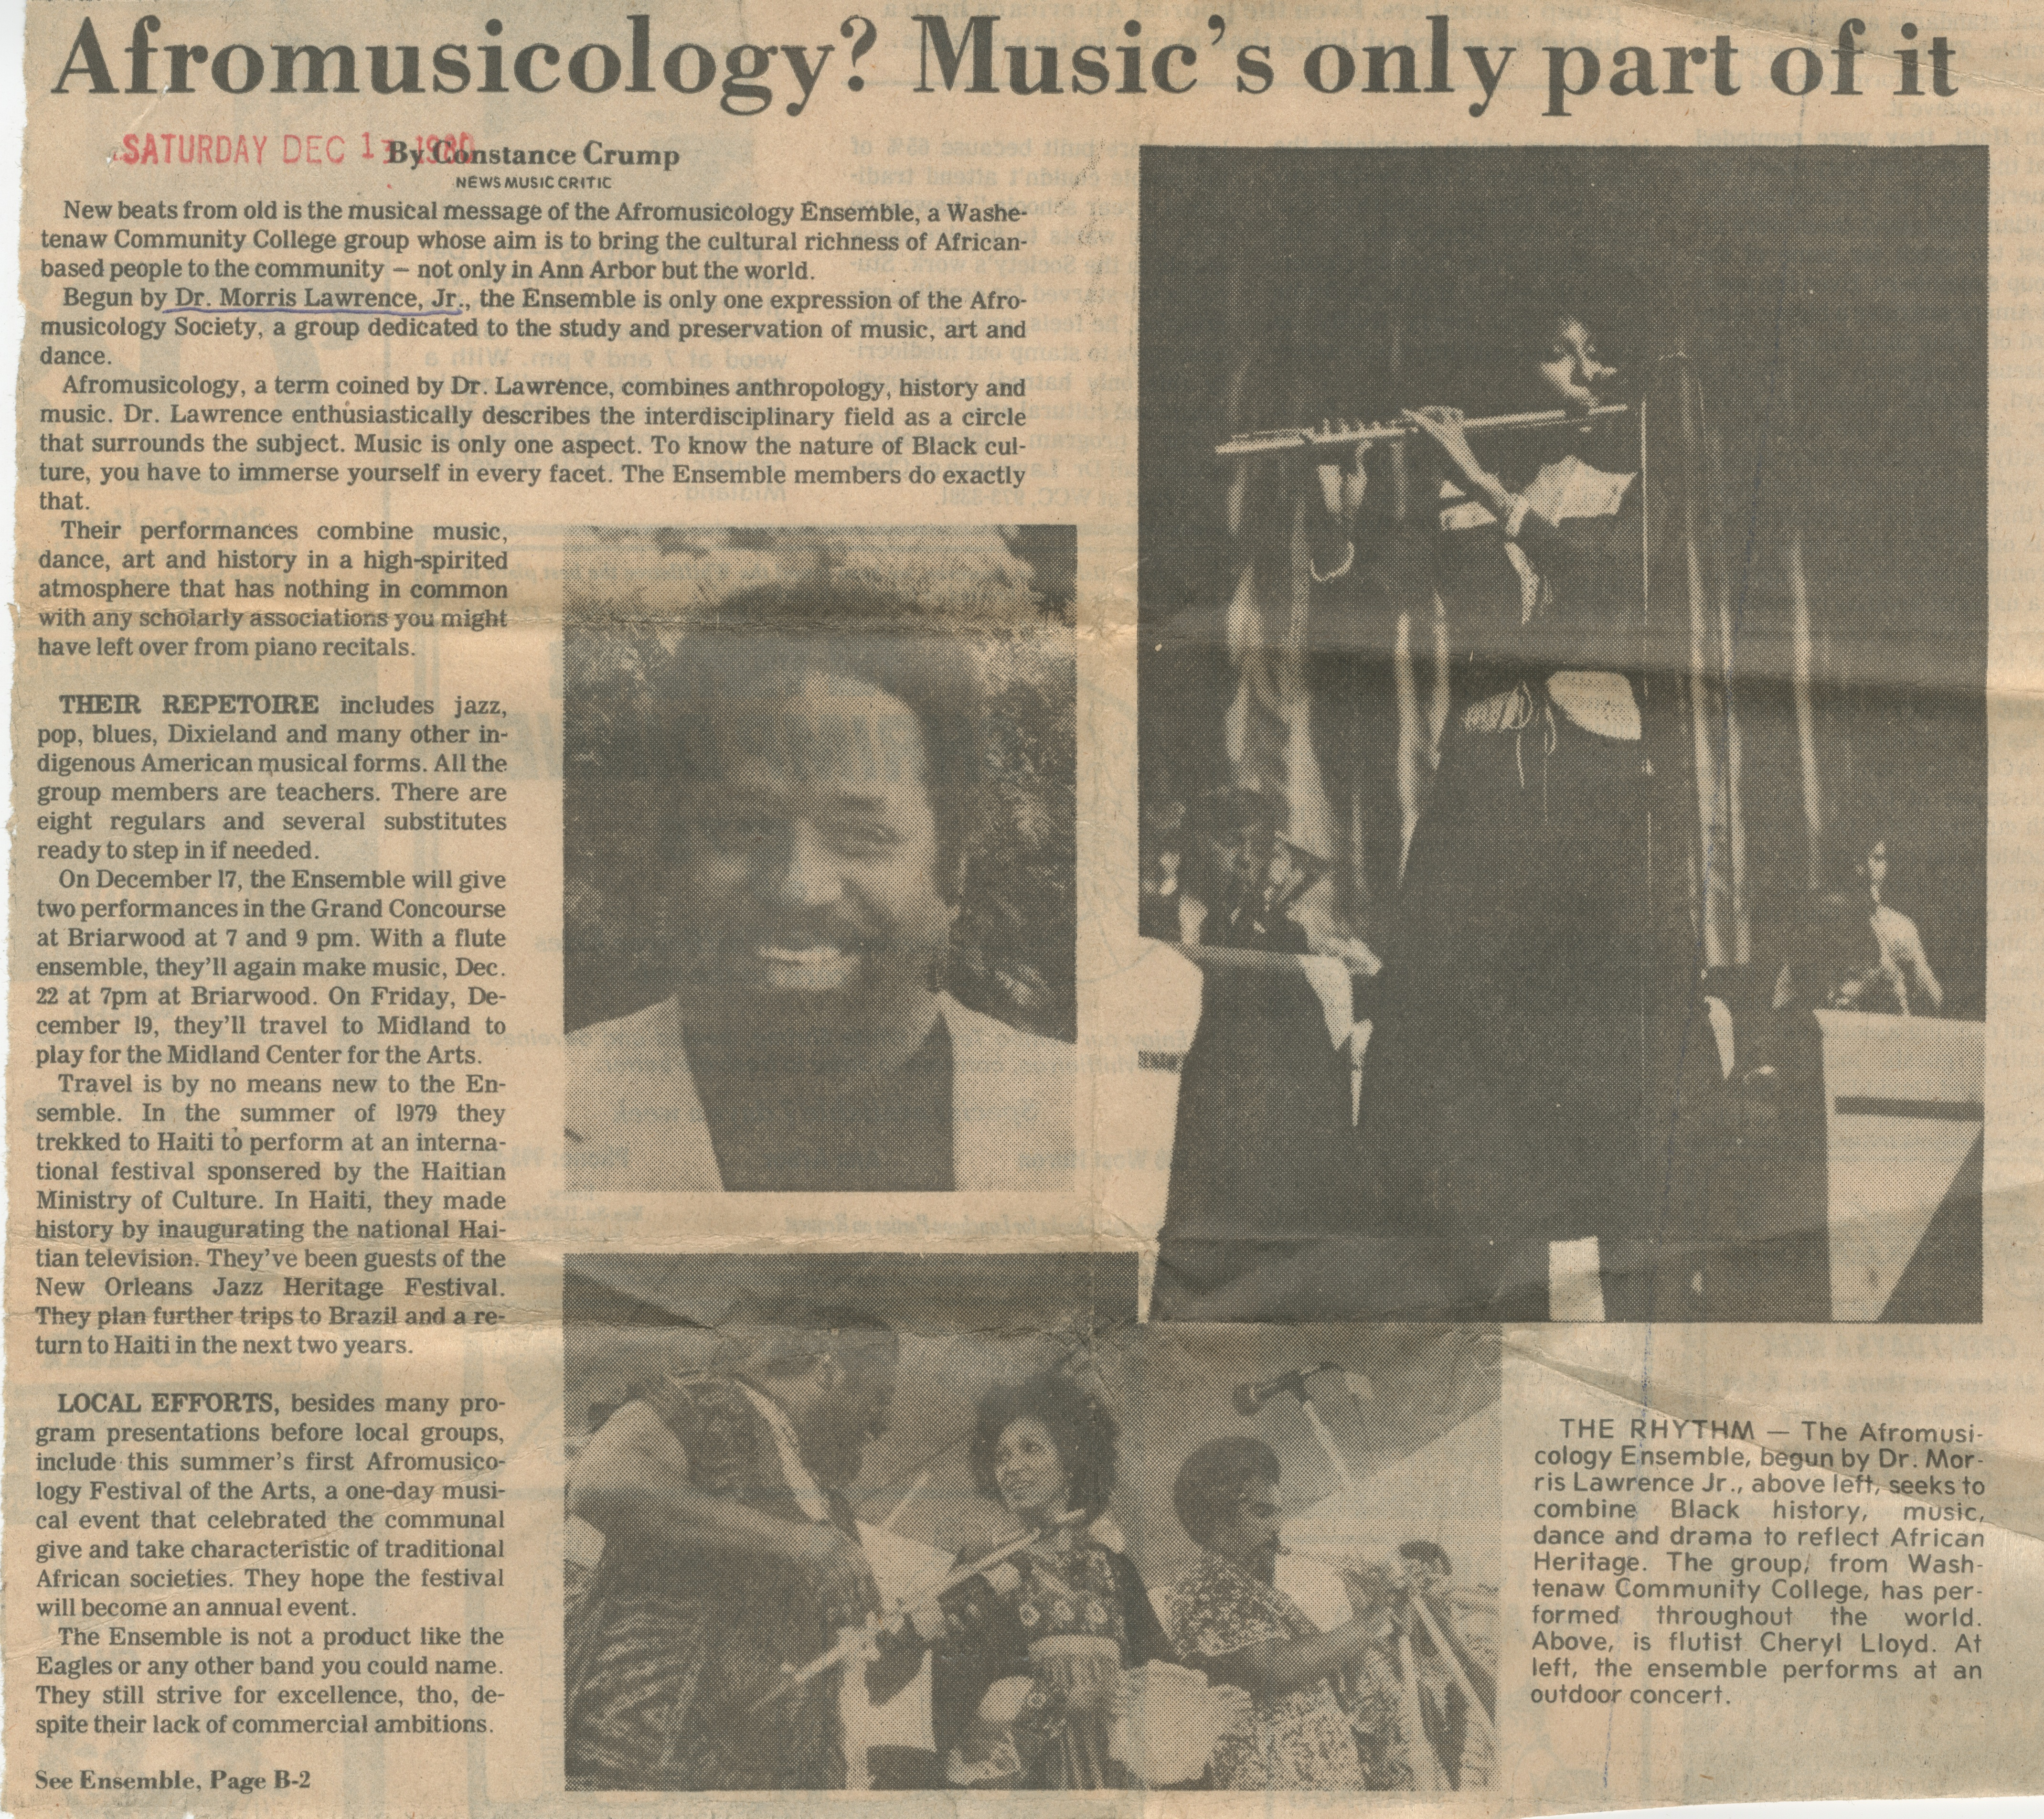 Afromusicology? Music's only part of it image